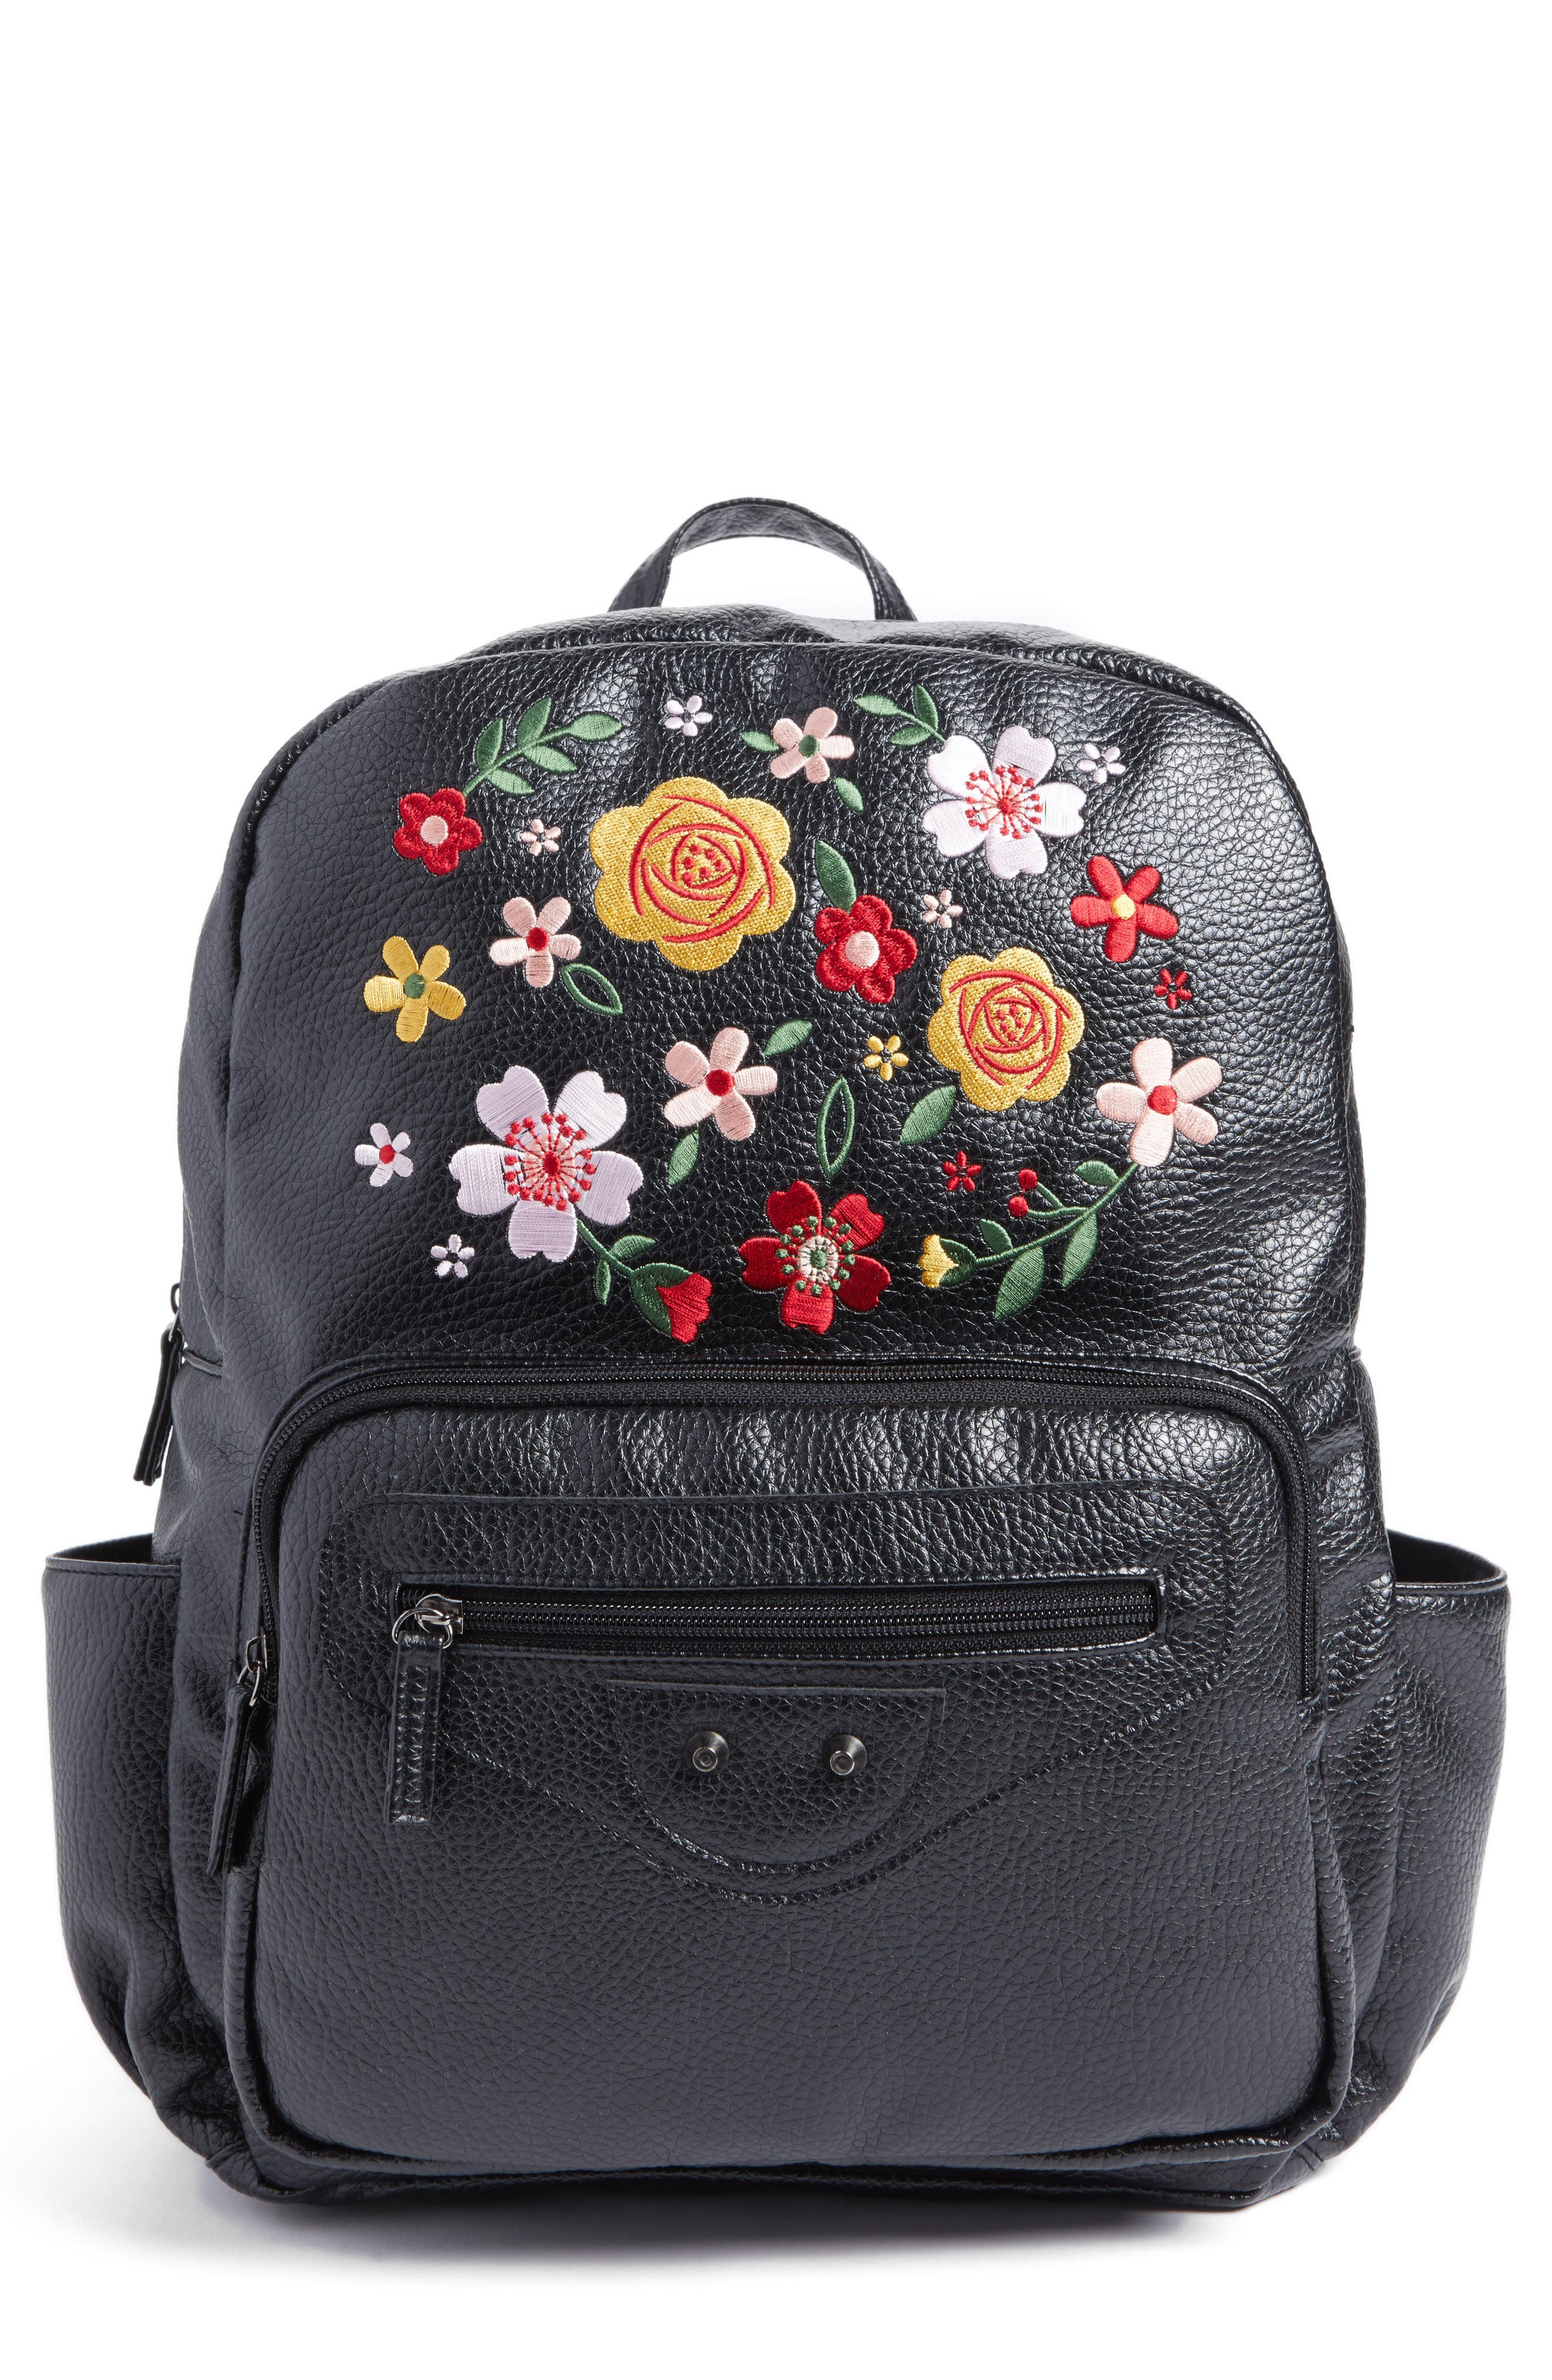 Embroidered Backpack,                             Main thumbnail 1, color,                             Black